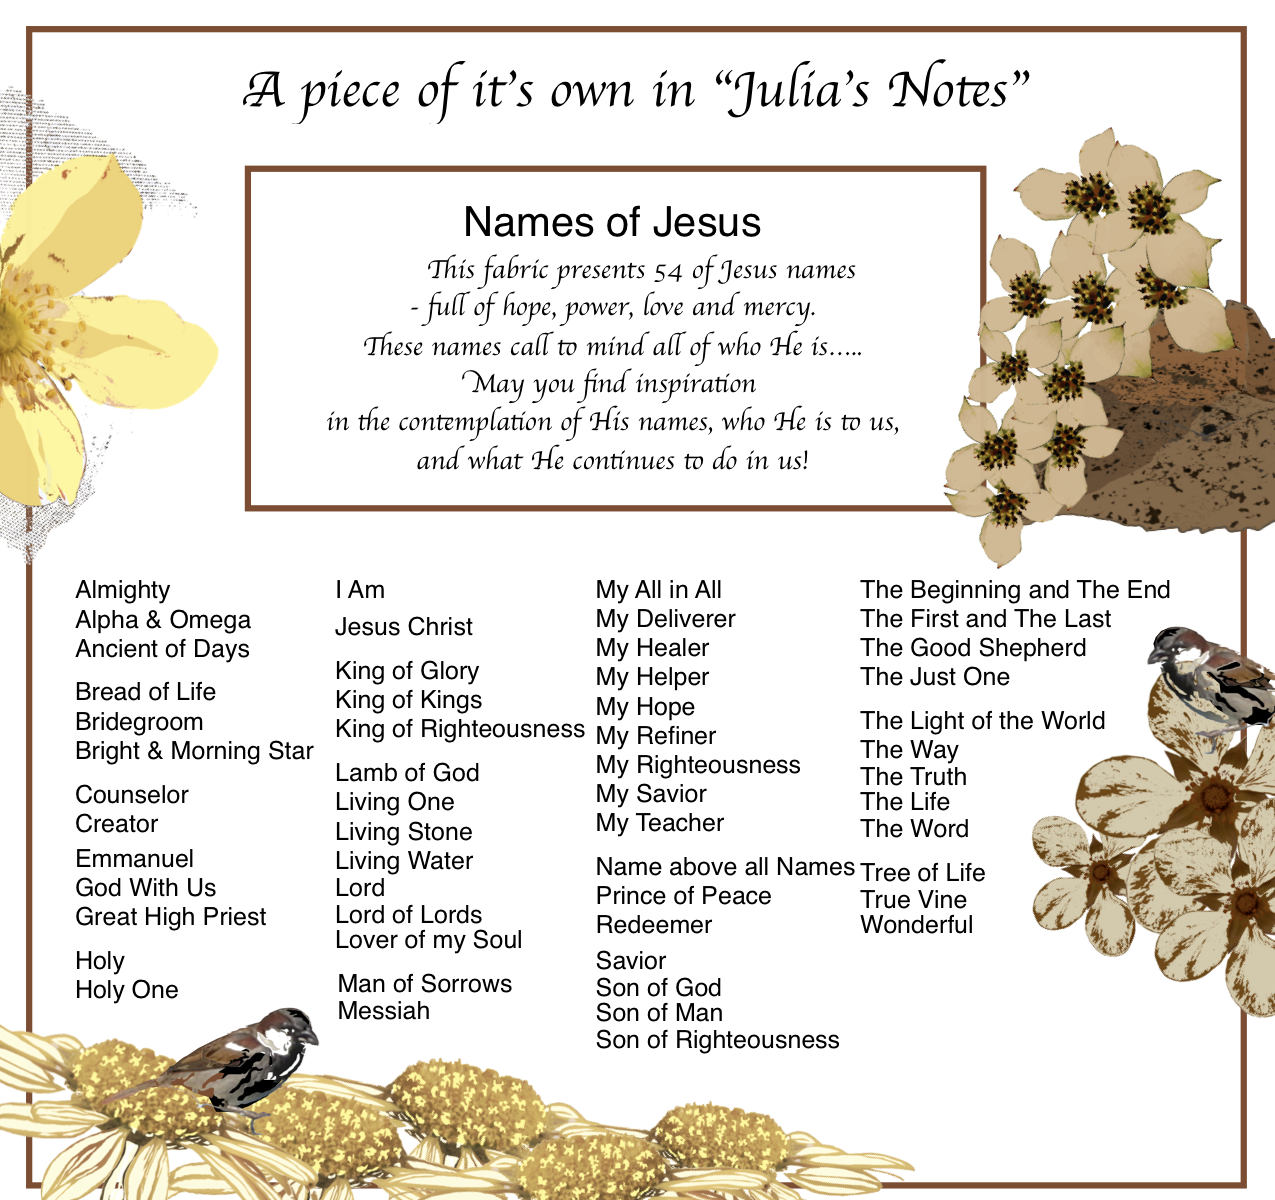 Amazing descriptive titles for Jesus which says who !He is to us